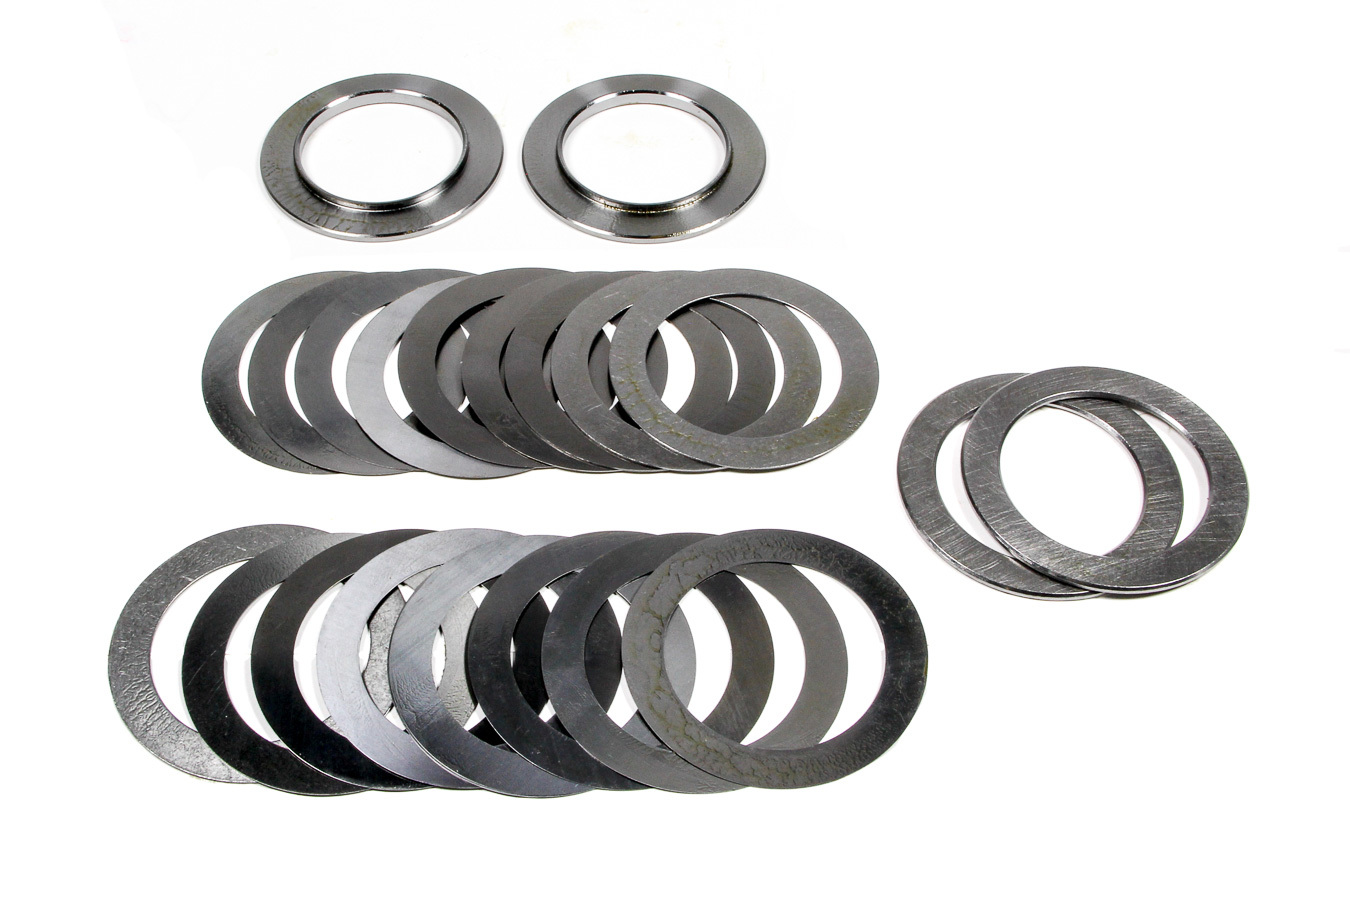 Yukon Gear And Axle Super Carrier Shim Kit - Ford 8.8 & GM 12 bolt